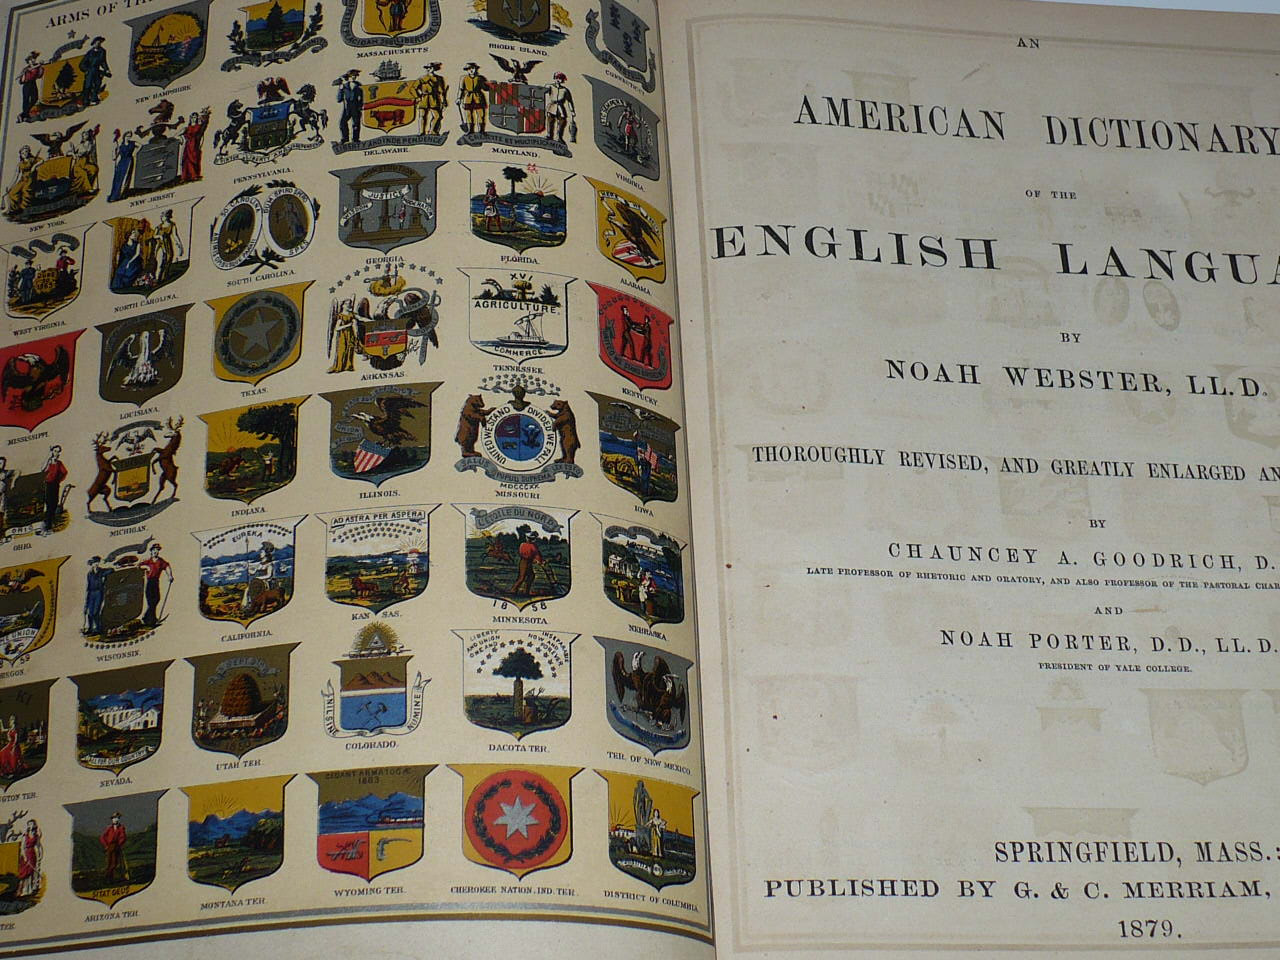 Books, Dictionary, Noah Webster,1875, American Dictionary, English Language,